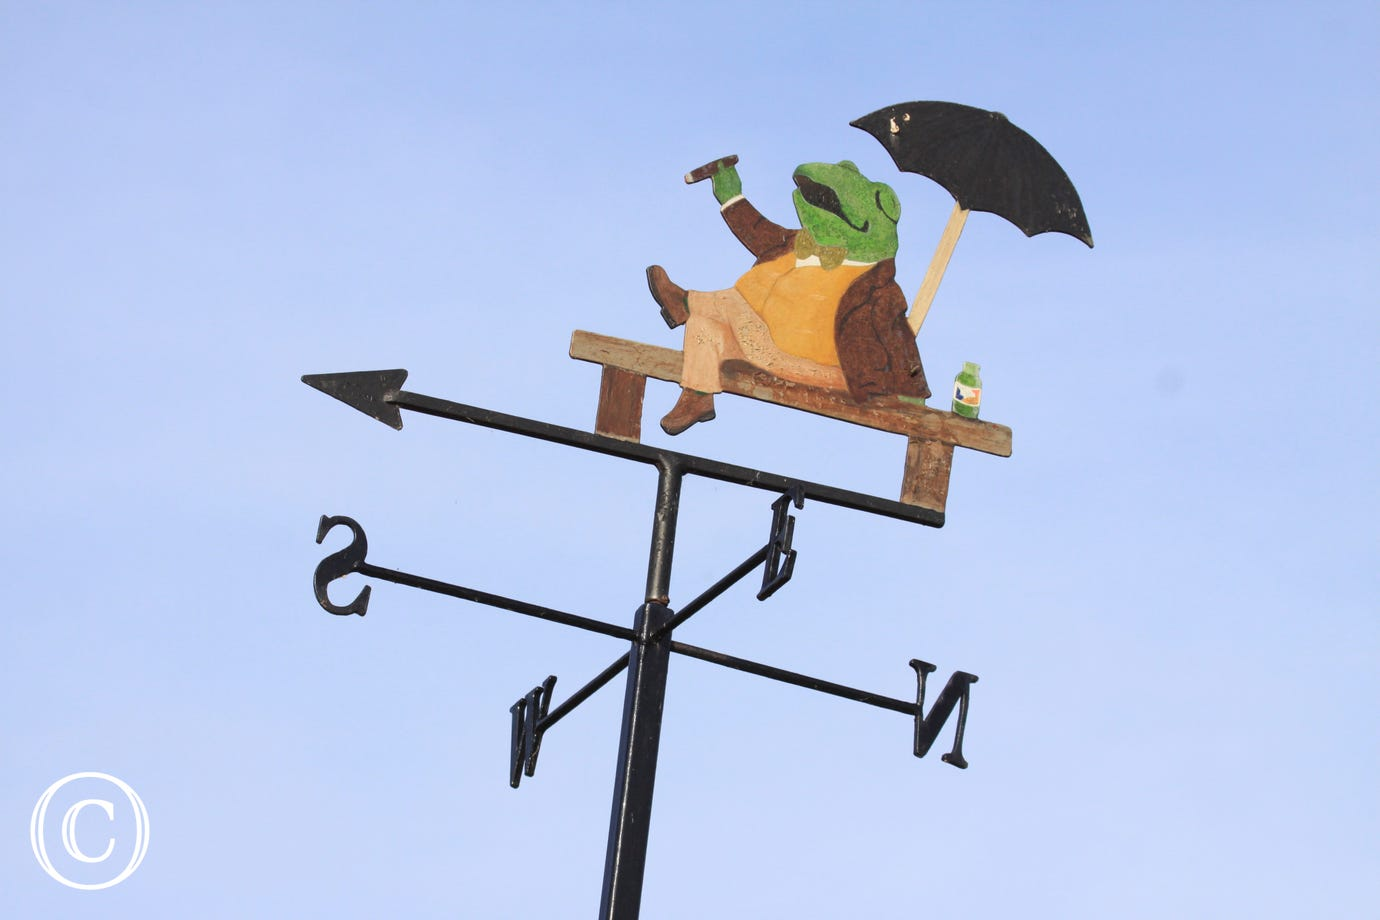 Mr Toad keeps look out on the weather vane